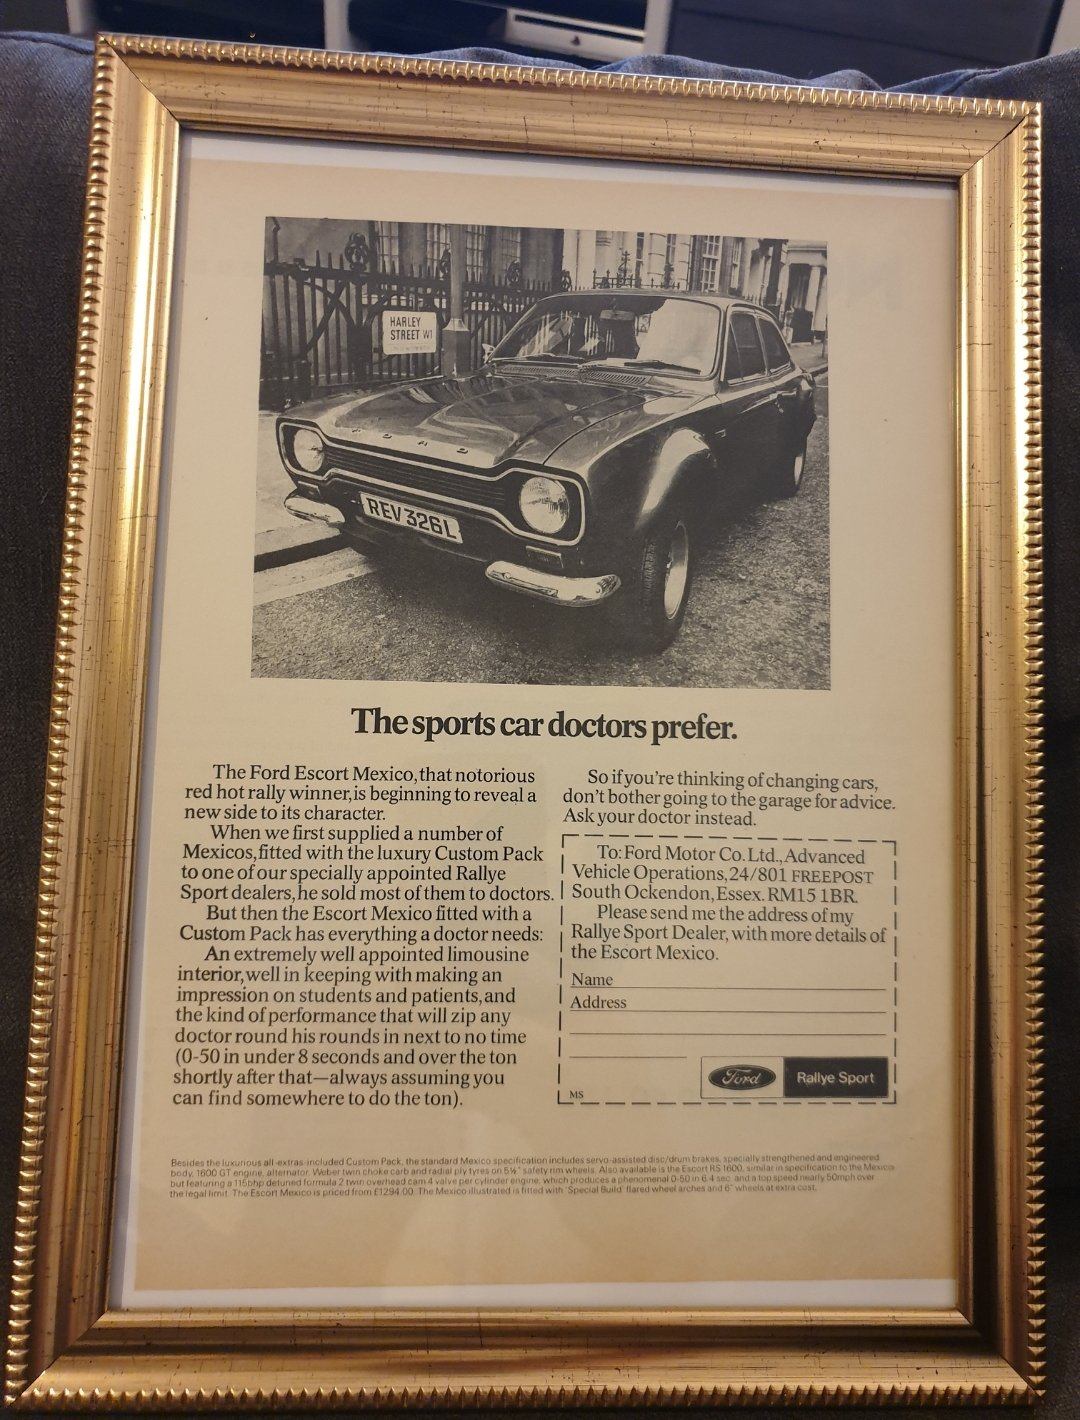 1972 Escort Mexico Framed Advert Original  For Sale (picture 1 of 2)